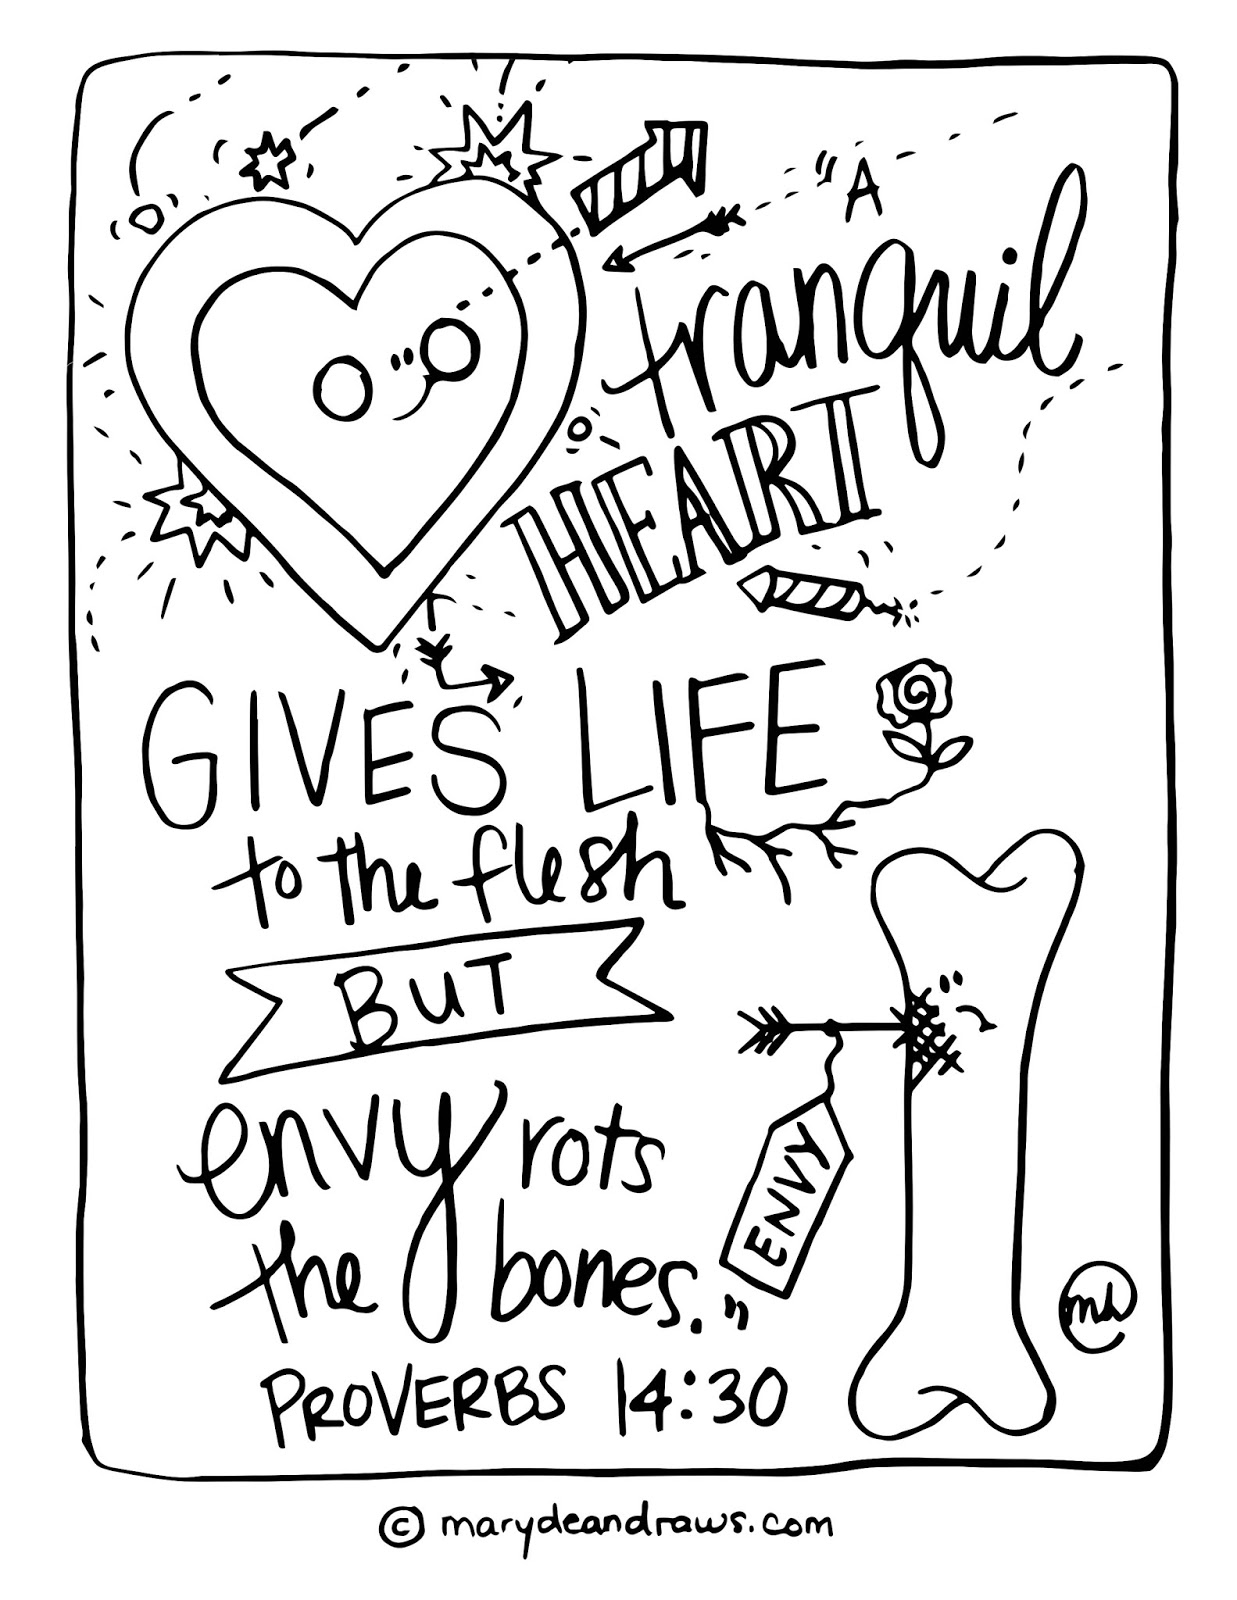 bible verse coloring pages - a tranquil heart and rotten bones proverbs 14 30